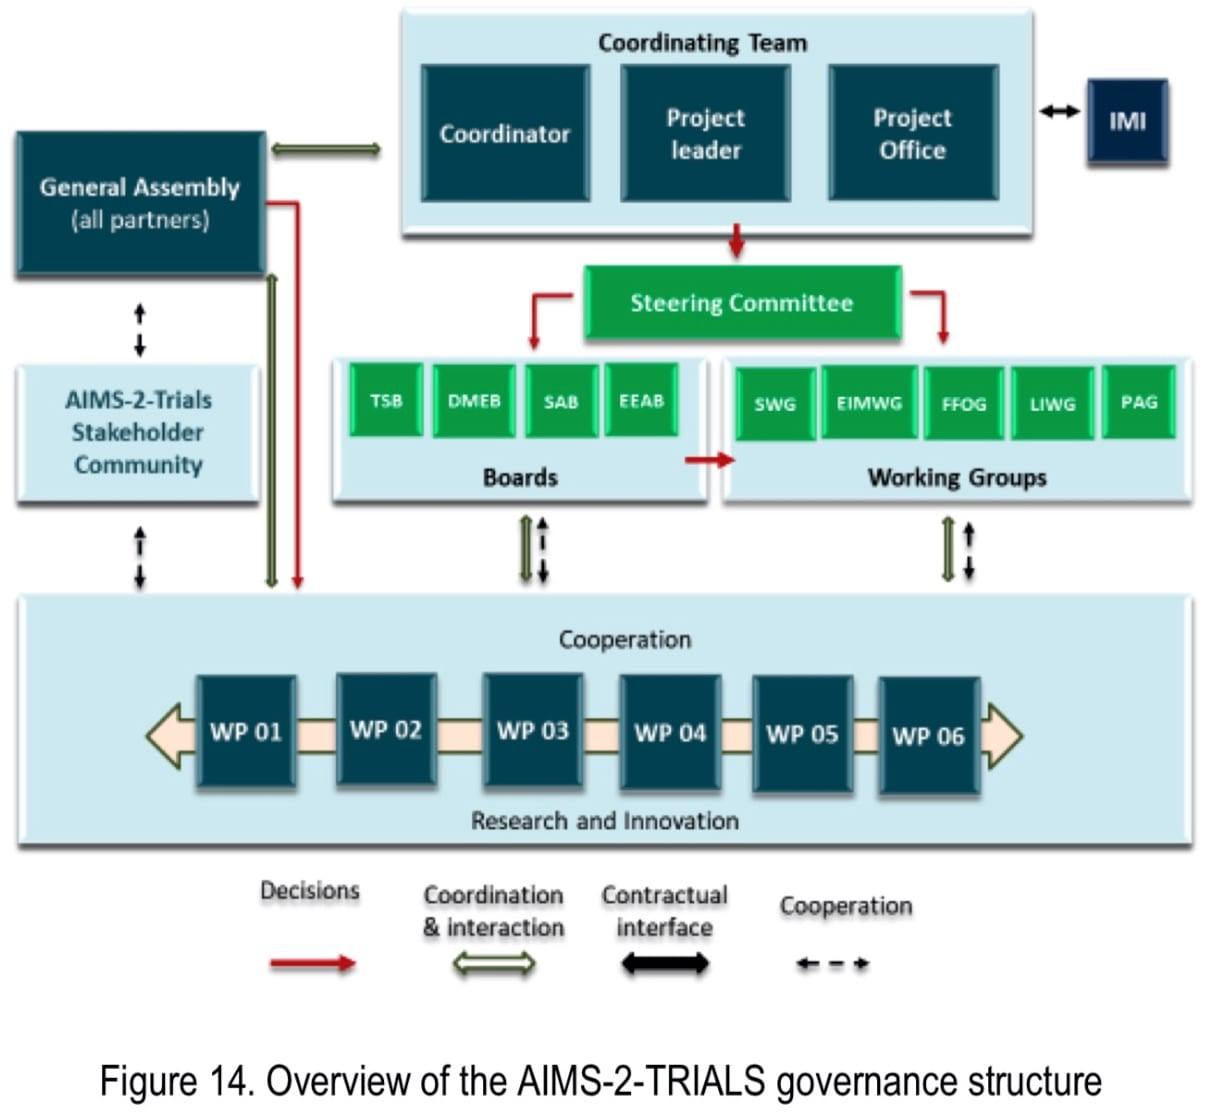 Overview of the AIMS-2-Trials governance structure